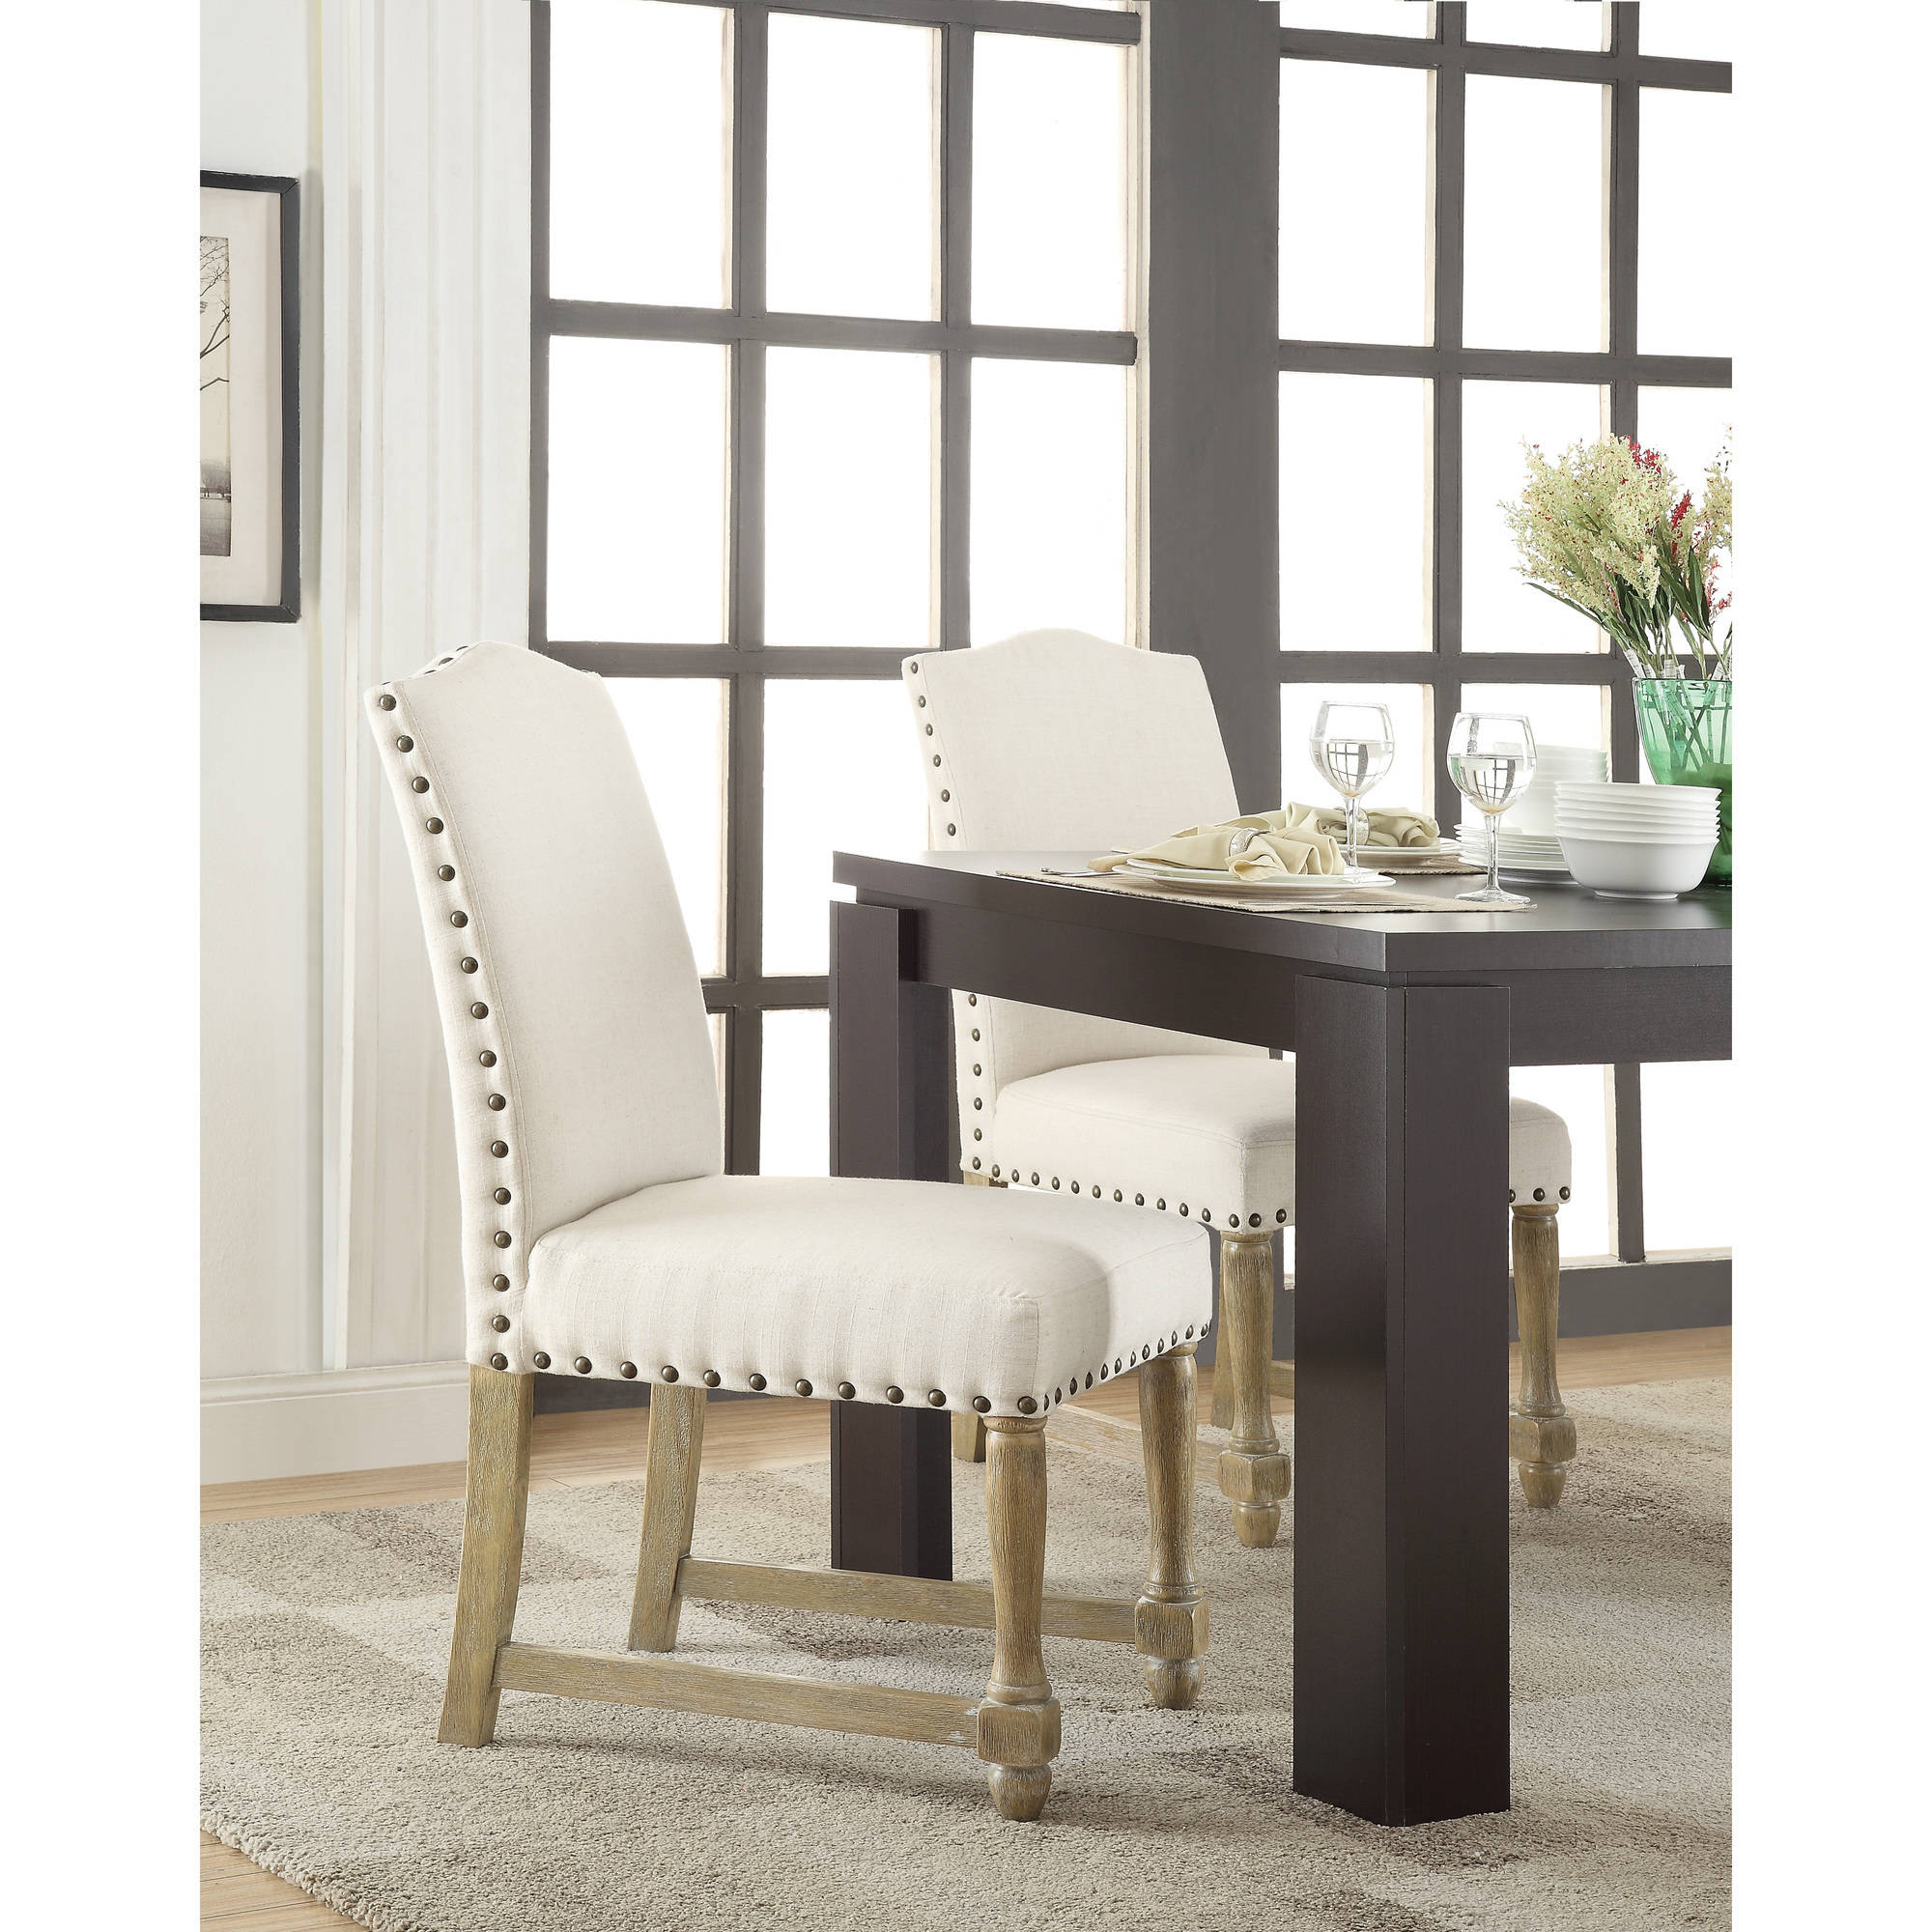 Kingman Dining Chair In Elite Espresso Bonded Leather With Nailhead Trim And Solid Wood Legs Com